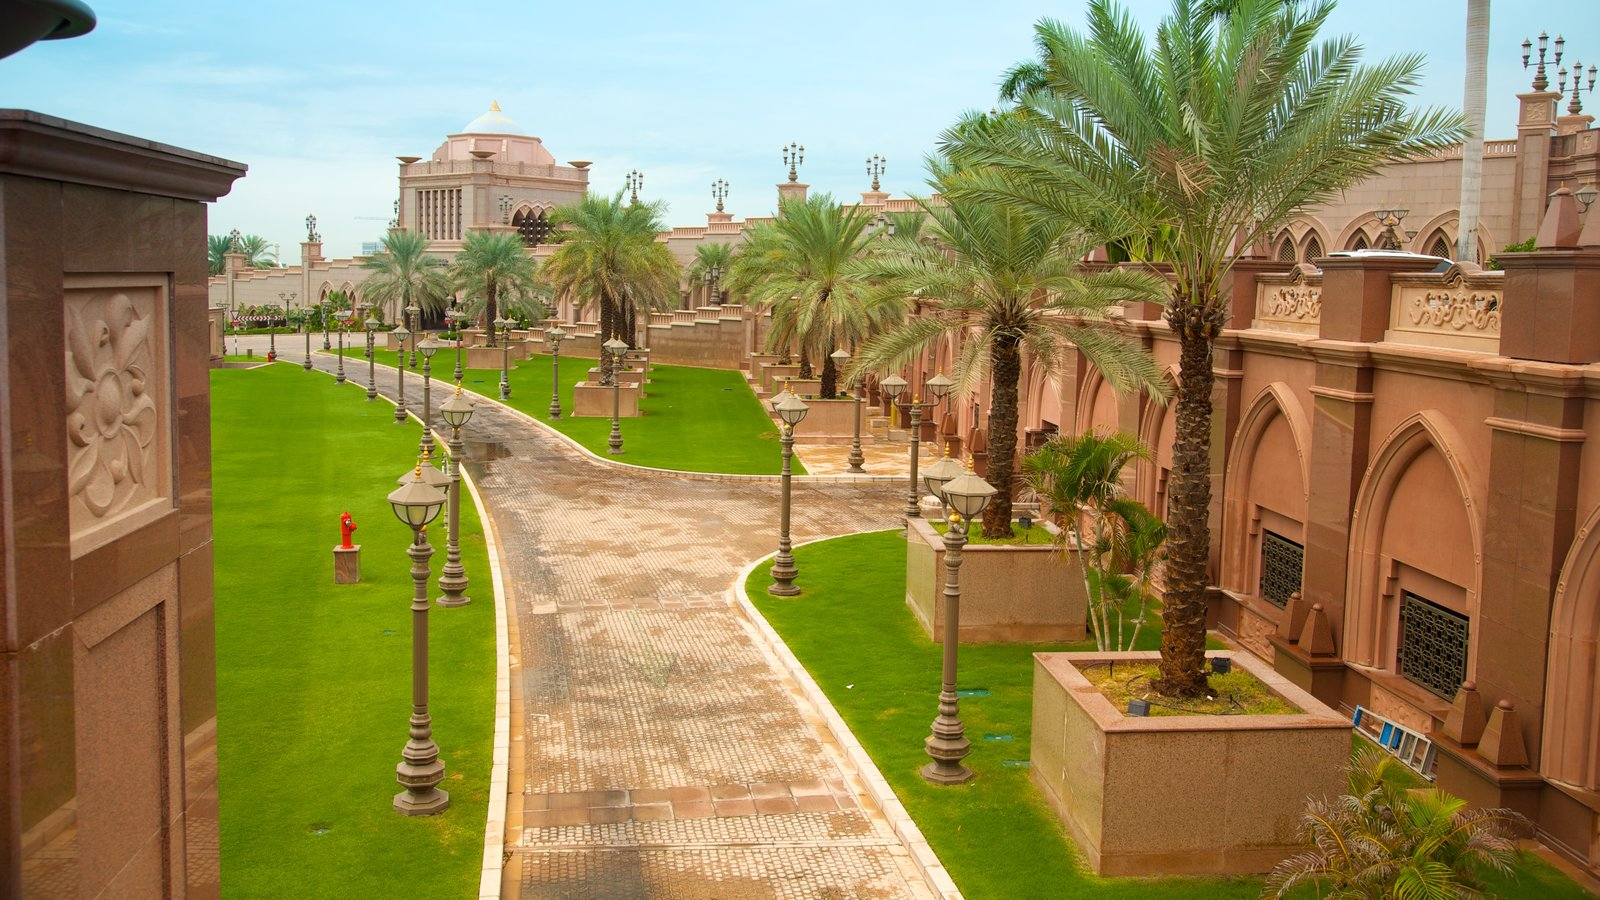 Abu Dhabi Emirate which includes a park and chateau or palace